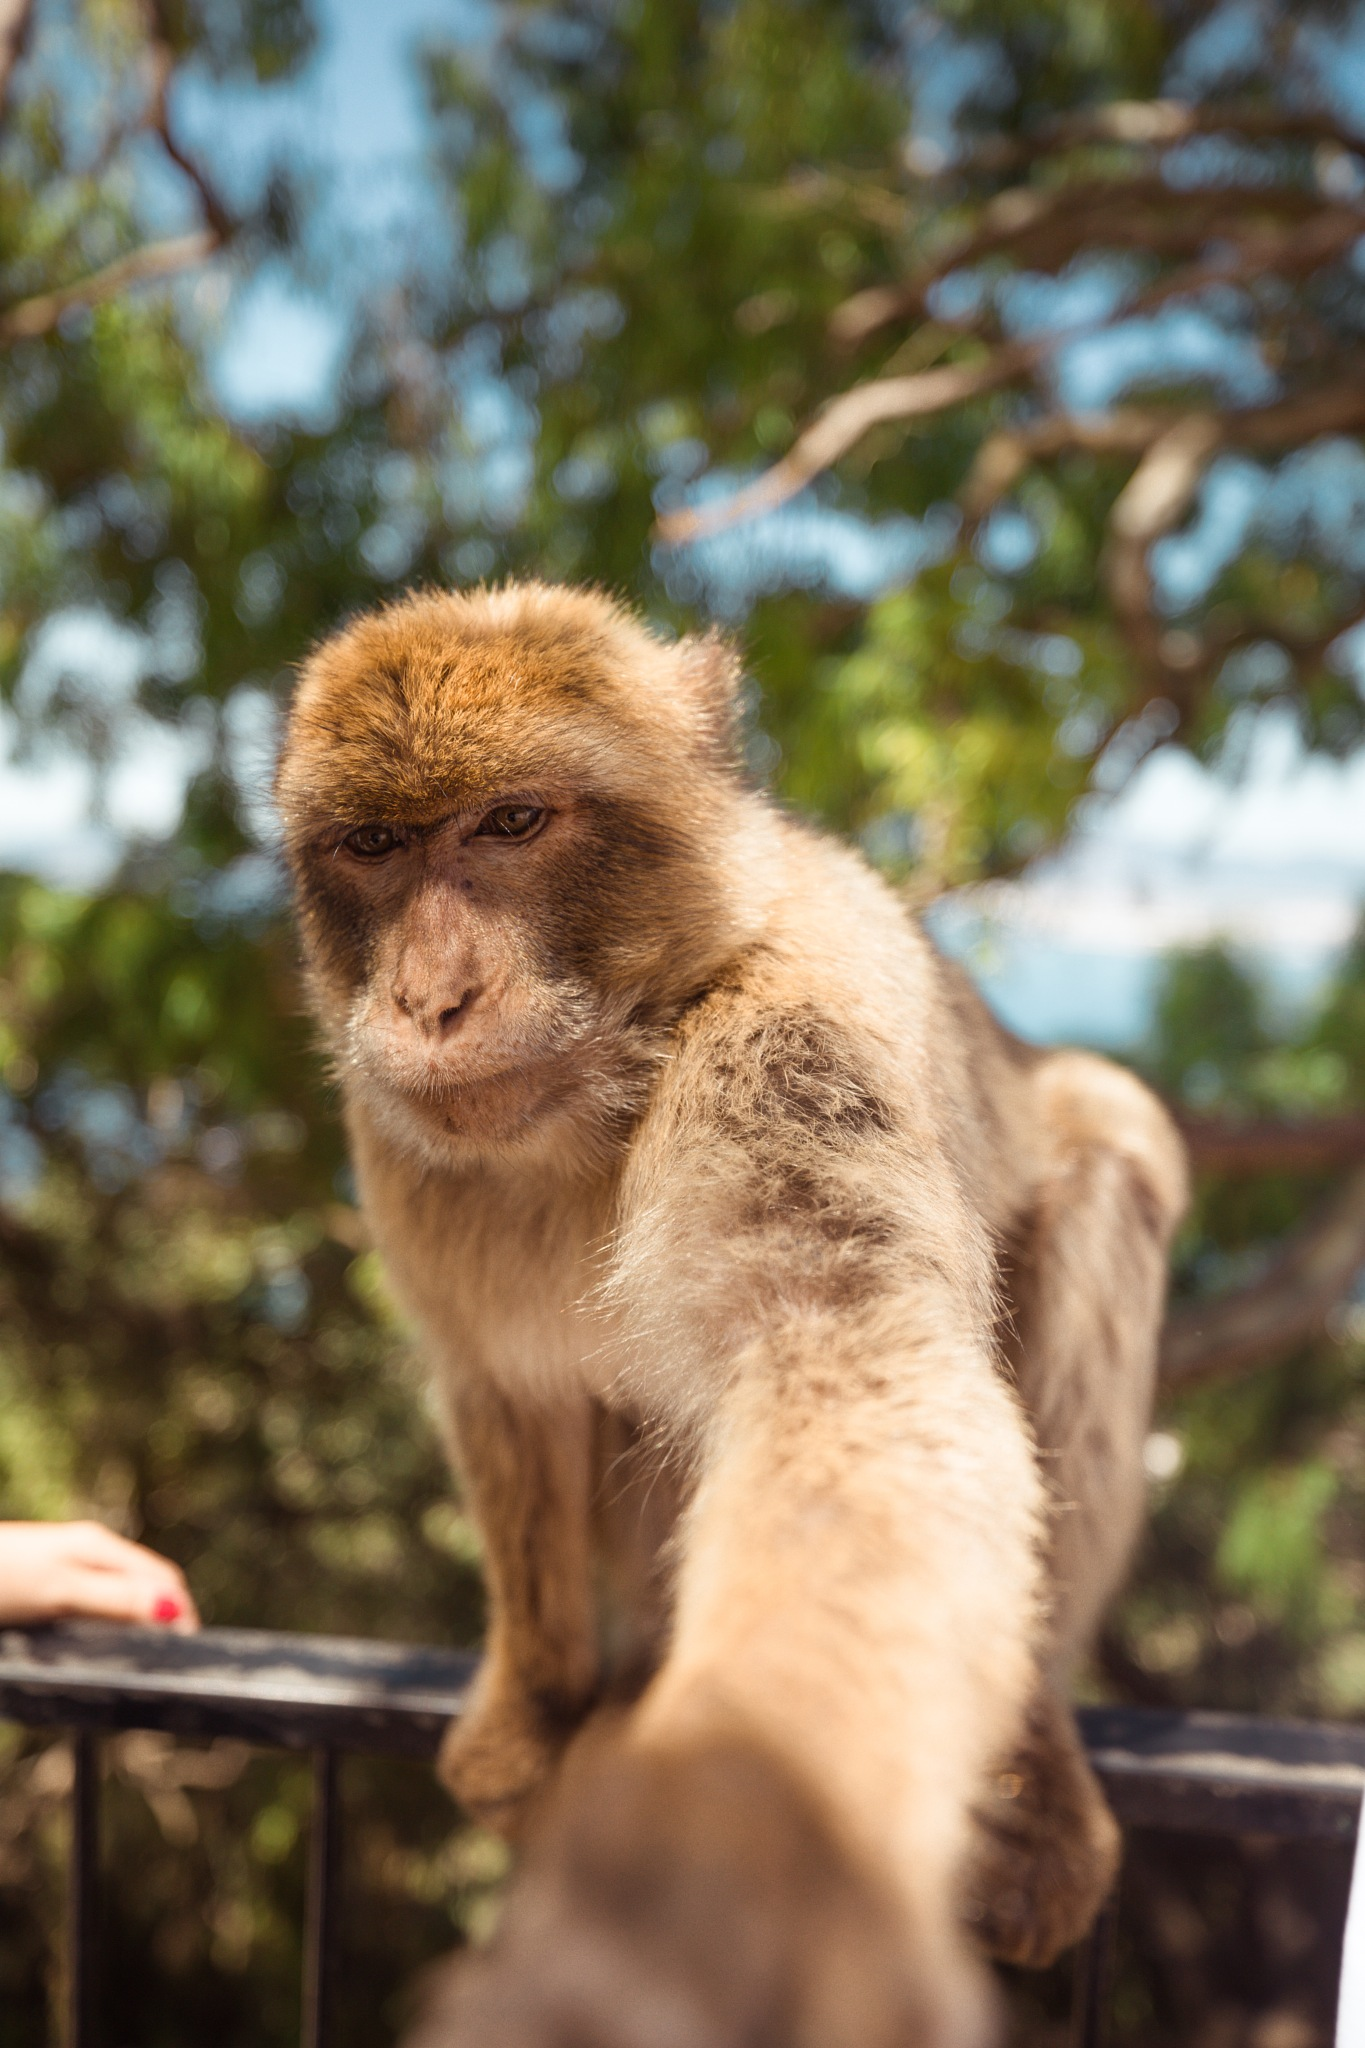 MONKEY by Justandreas